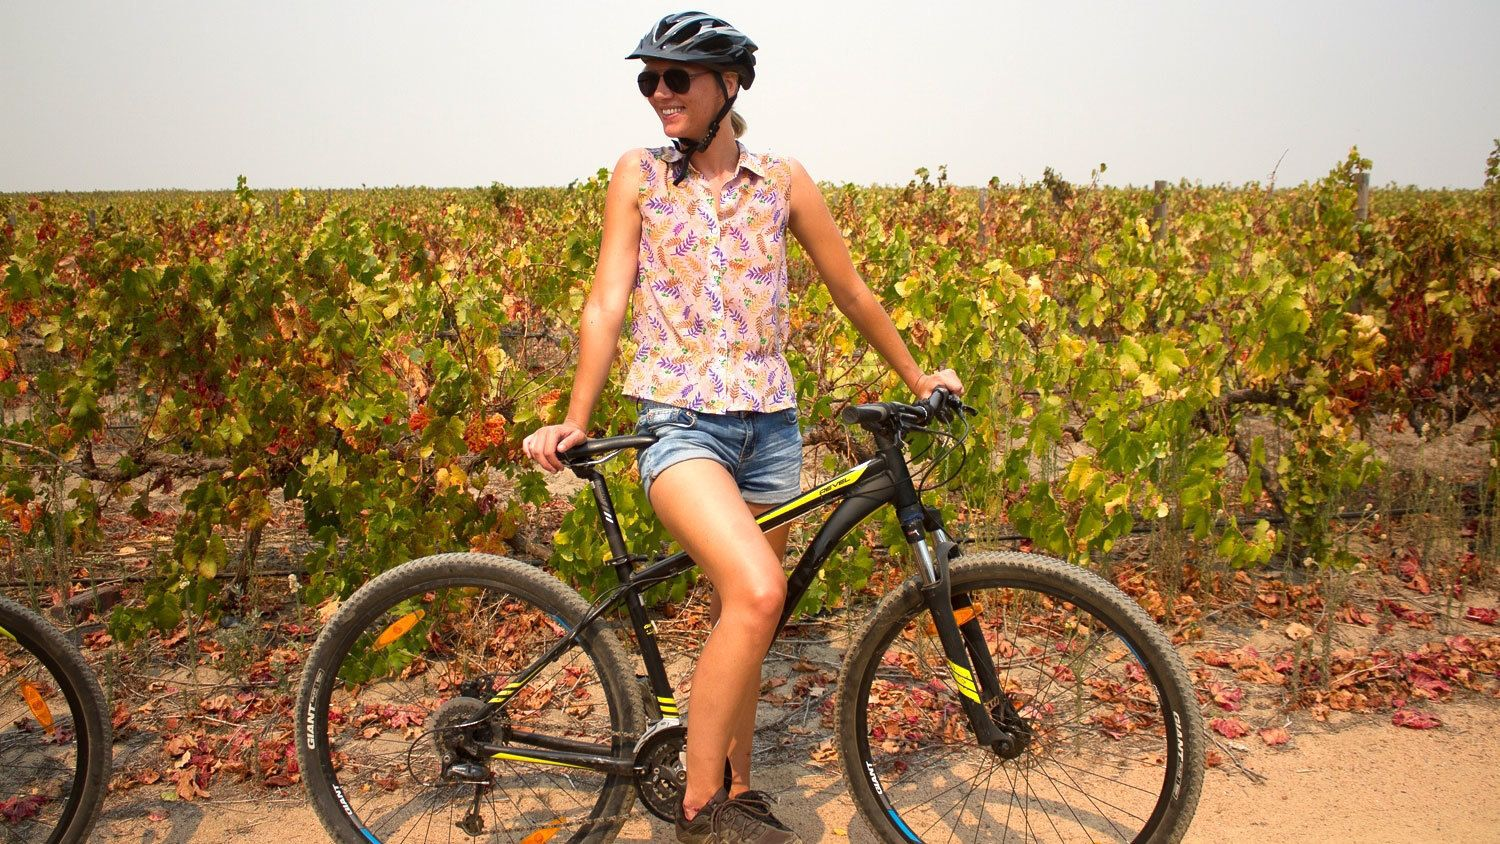 Person on a bike on the countryside